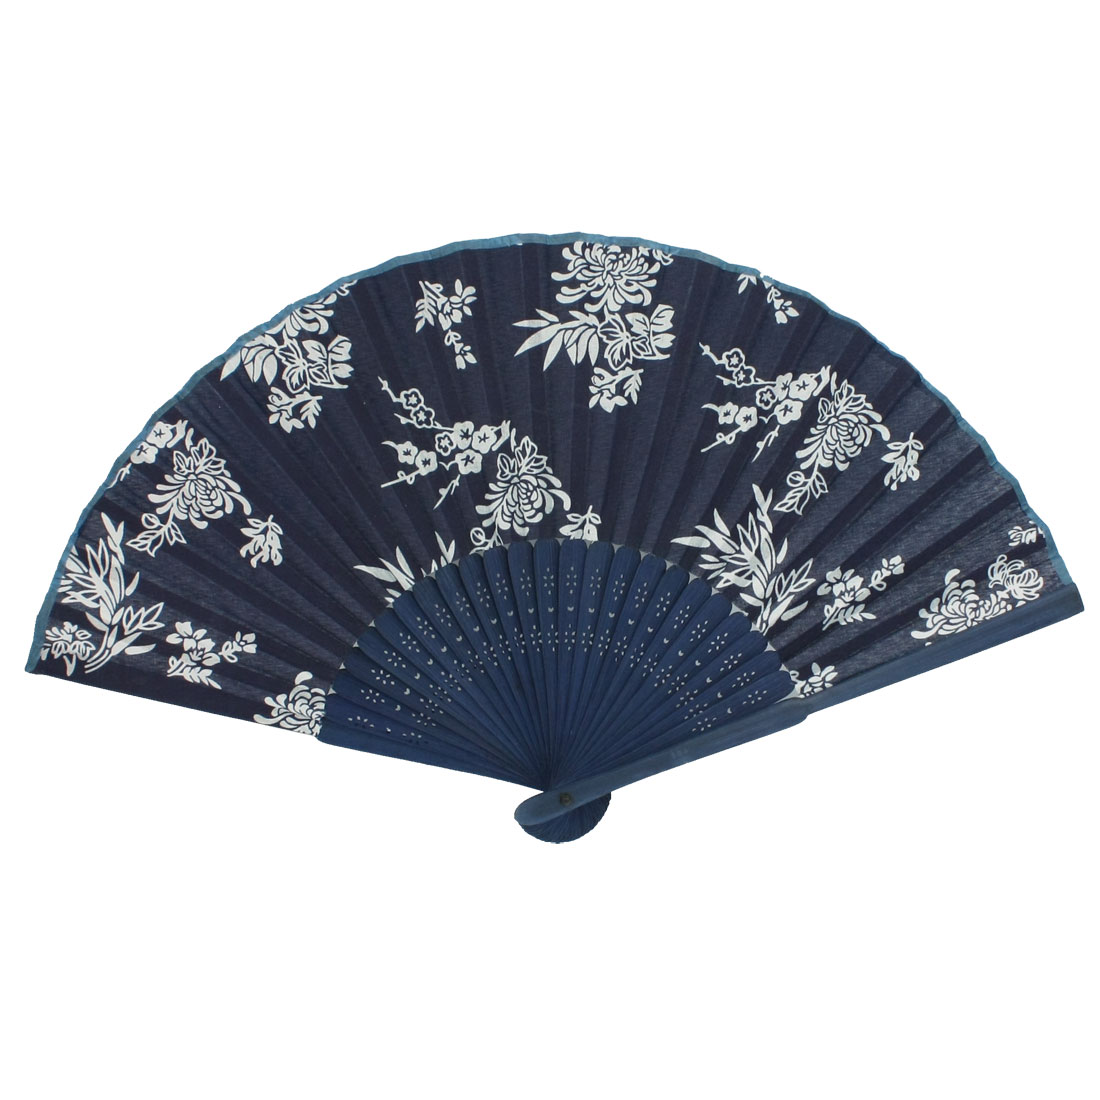 Foldable White Mum Printed Navy Blue Cloth Bamboo Frame Hand Fan